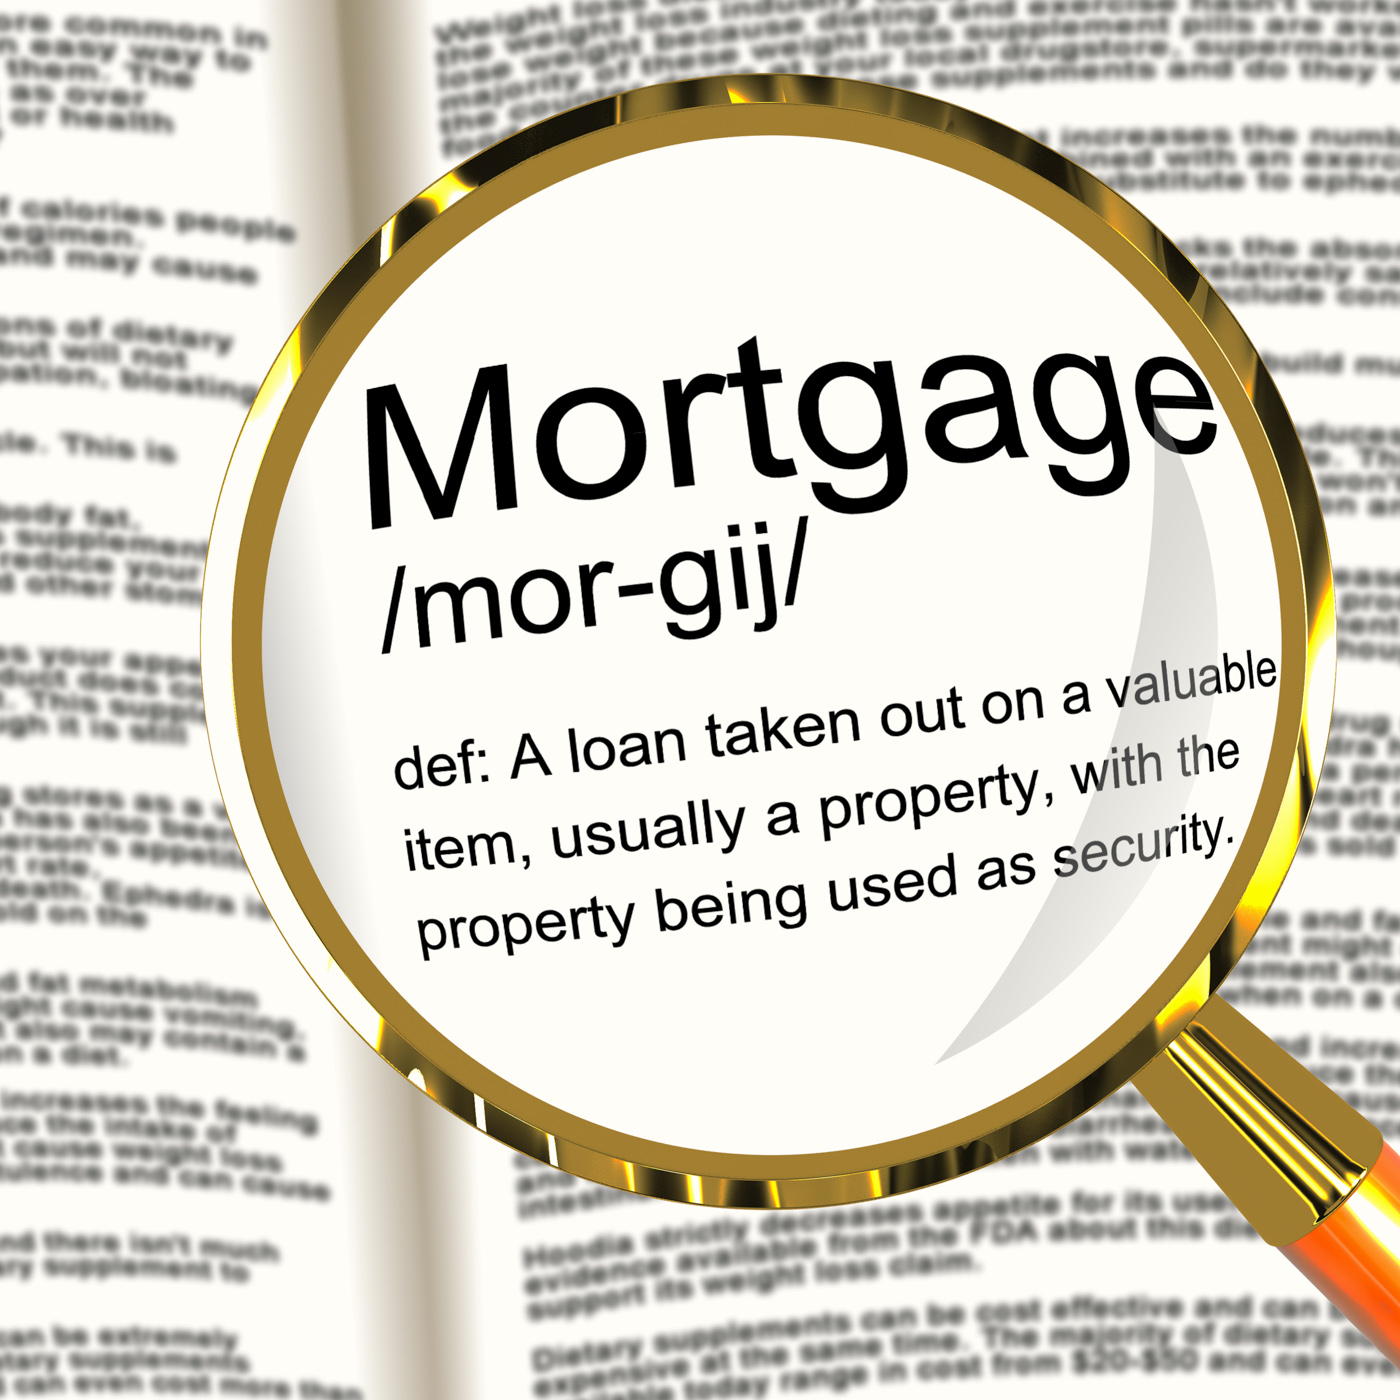 Mortgage Definition Magnifier Showing Property Or Real Estate Loan, Borrow, Loan, Residence, Realestate, HQ Photo